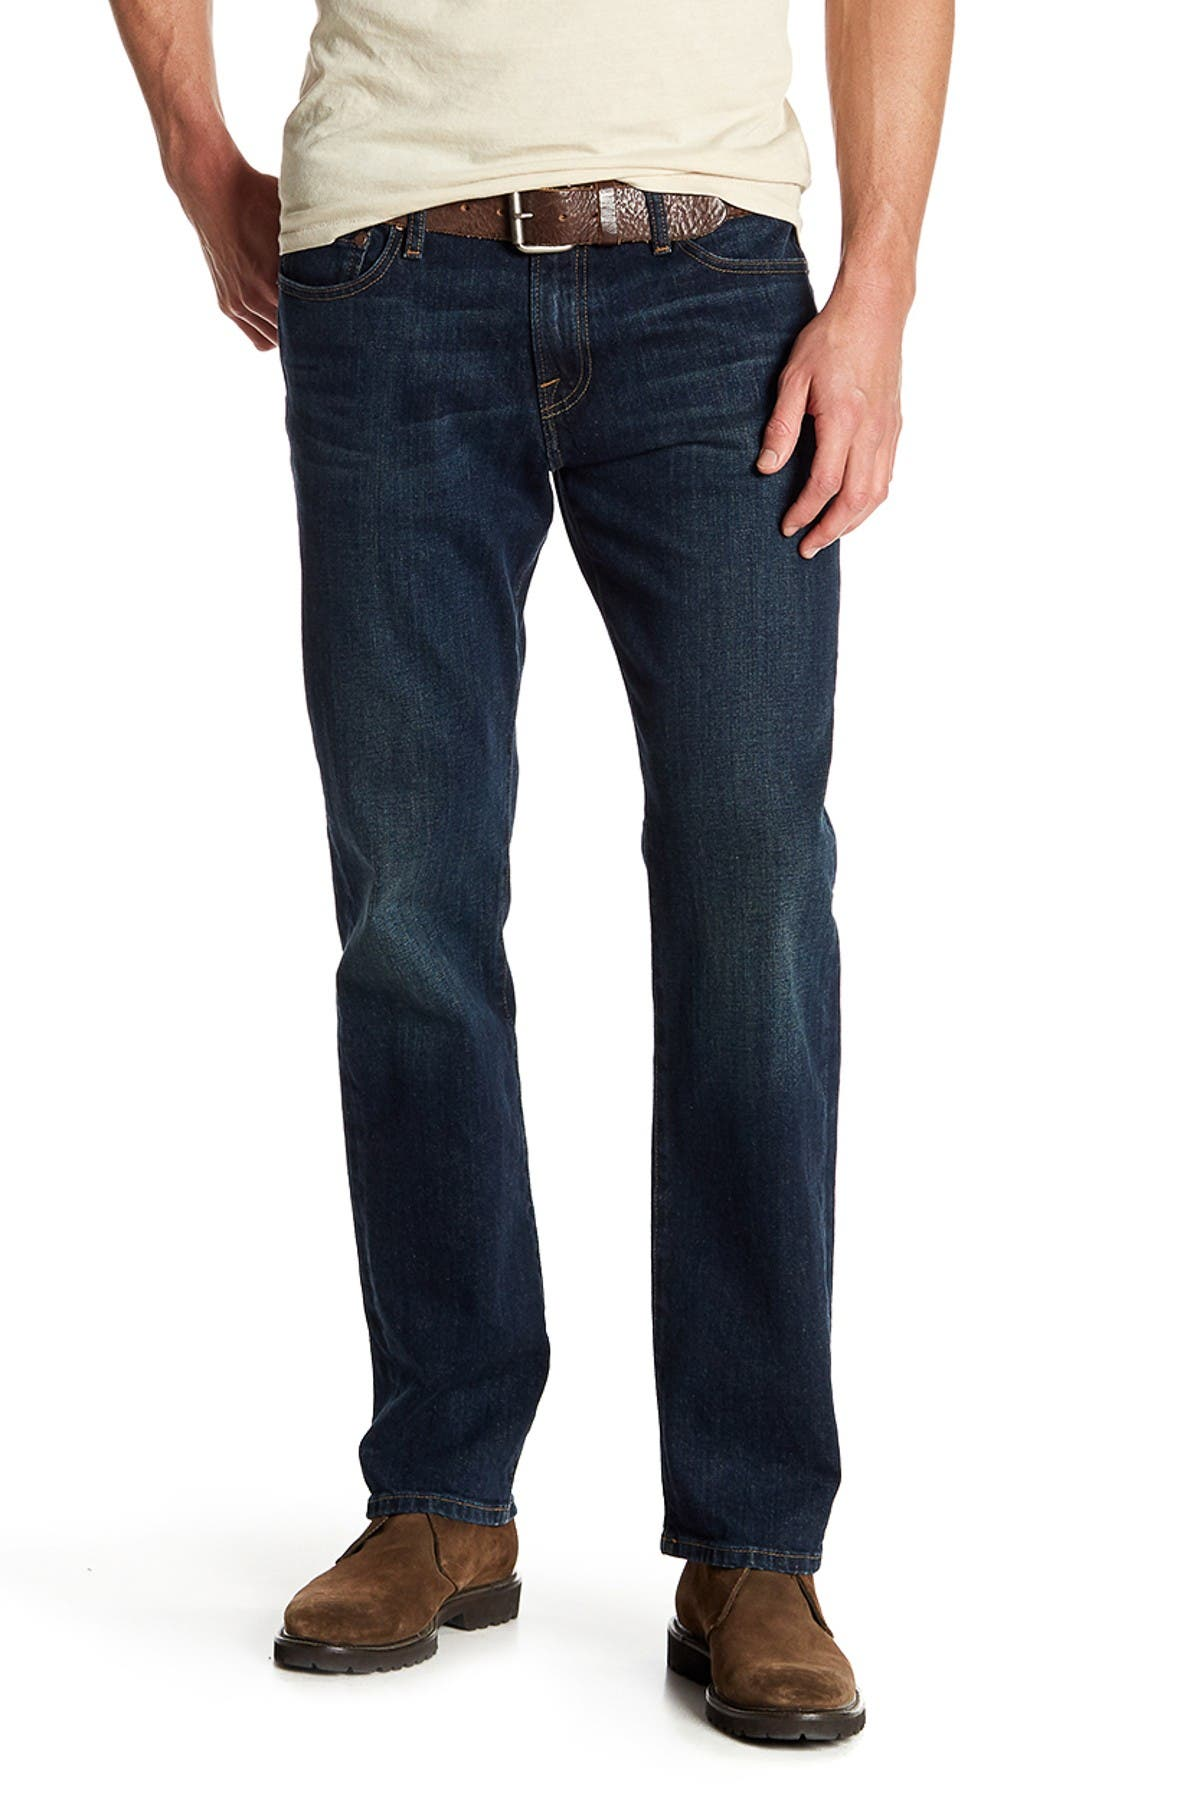 "Image of Lucky Brand 221 Original Straight Leg Jeans - 30-34"" Inseam"